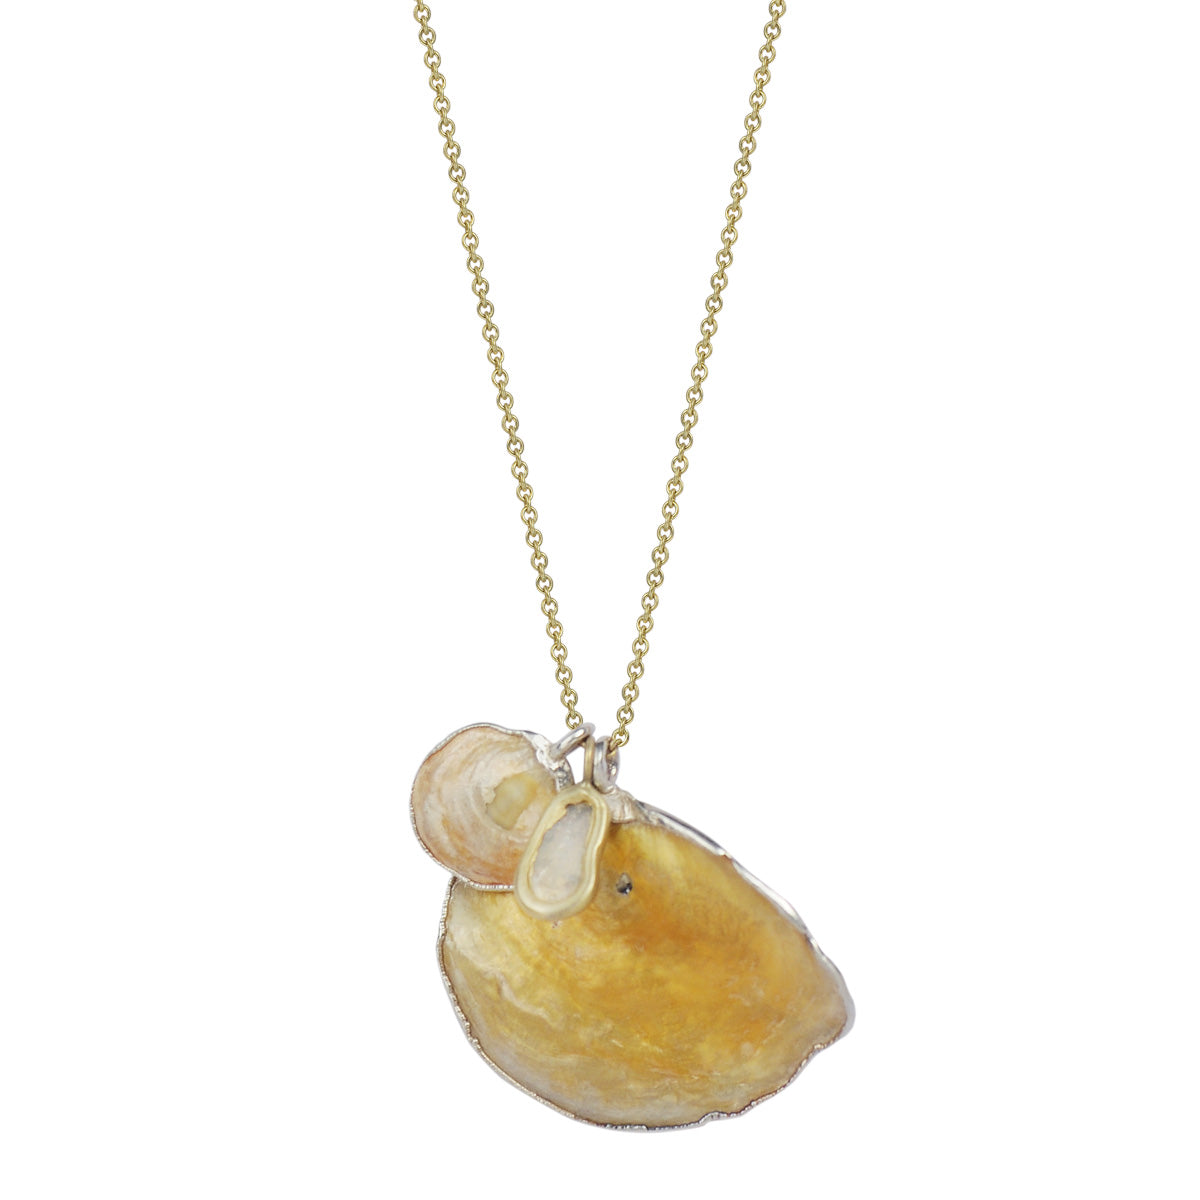 Silver Shell Charms Necklace with Opaque Diamond Slice on 18K Gold Chain